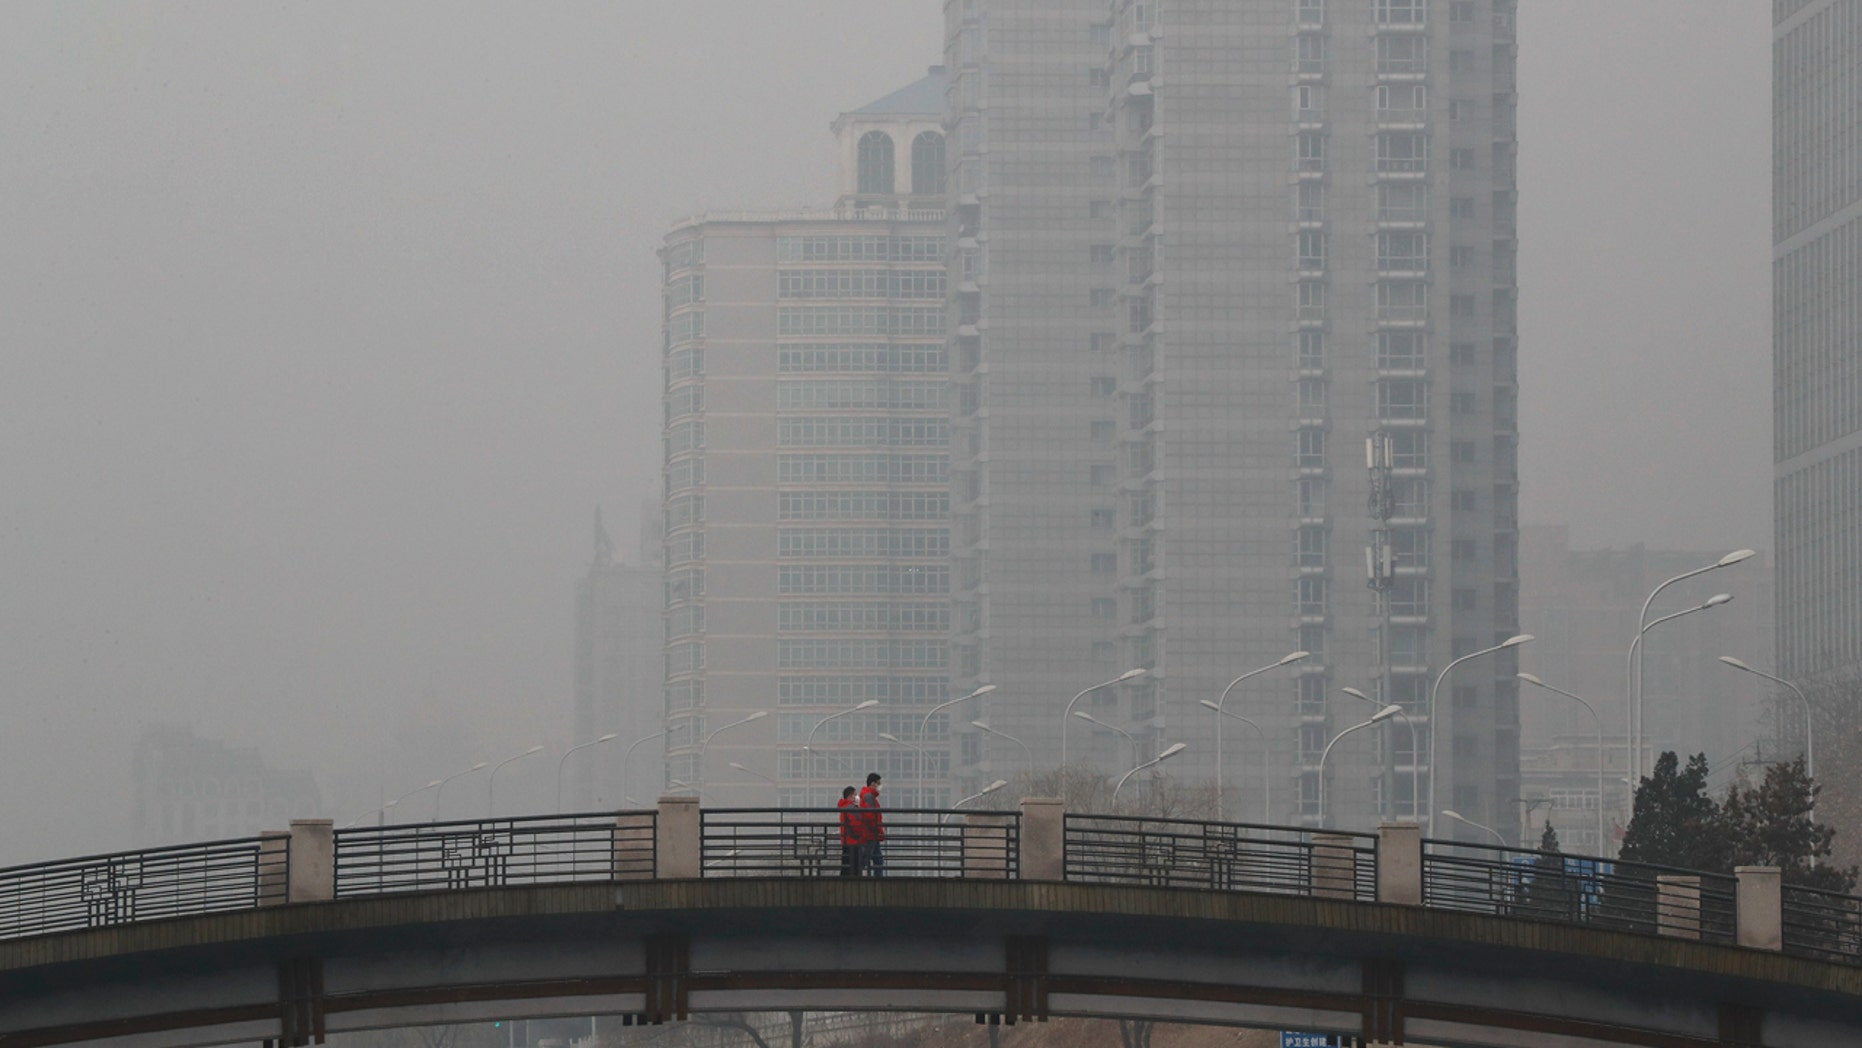 Chinese men wearing masks to filter the pollution walk on a bridge near building shrouded by fog and pollution in Beijing, Thursday, Jan. 5, 2017.